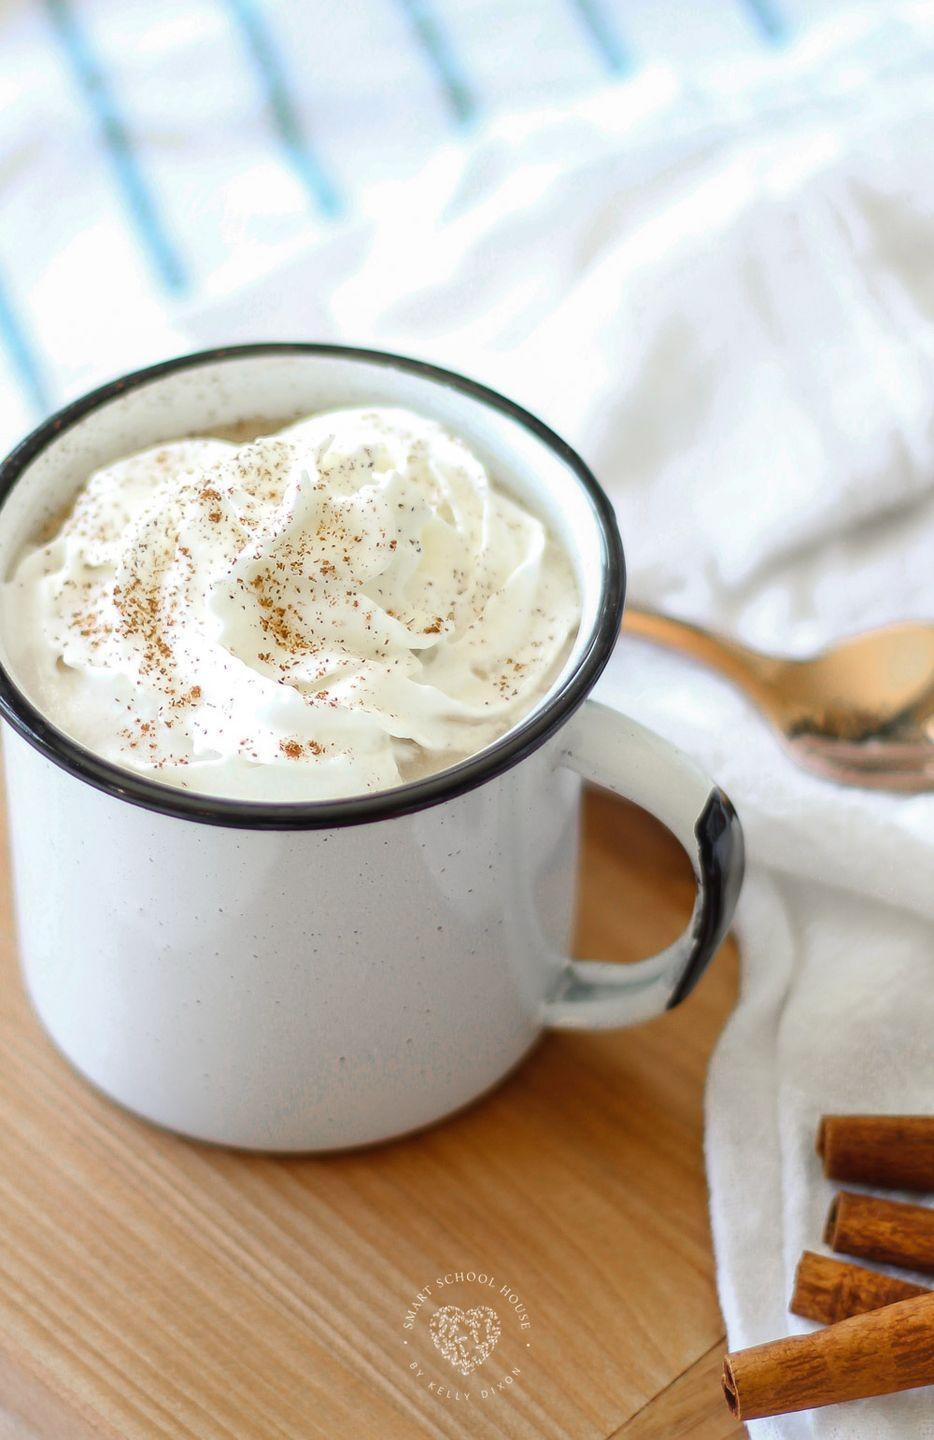 """<p>Save your Starbucks money: This PSL comes together in the slow cooker, and the big batch is enough to feed a crowd (hello, <a href=""""https://www.countryliving.com/diy-crafts/g1533/fall-crafts/"""" rel=""""nofollow noopener"""" target=""""_blank"""" data-ylk=""""slk:fall crafting"""" class=""""link rapid-noclick-resp"""">fall crafting</a> party!).</p><p><strong>Get the recipe at <a href=""""https://www.smartschoolhouse.com/easy-recipe/crock-pot-pumpkin-spice-latte"""" rel=""""nofollow noopener"""" target=""""_blank"""" data-ylk=""""slk:Smart School House"""" class=""""link rapid-noclick-resp"""">Smart School House</a>.</strong></p><p><a class=""""link rapid-noclick-resp"""" href=""""https://www.amazon.com/Crock-Pot-SCV700SS-Stainless-7-Quart-Manual/dp/B003OAJGJO?tag=syn-yahoo-20&ascsubtag=%5Bartid%7C10050.g.619%5Bsrc%7Cyahoo-us"""" rel=""""nofollow noopener"""" target=""""_blank"""" data-ylk=""""slk:SHOP SLOW COOKERS"""">SHOP SLOW COOKERS</a><br></p>"""